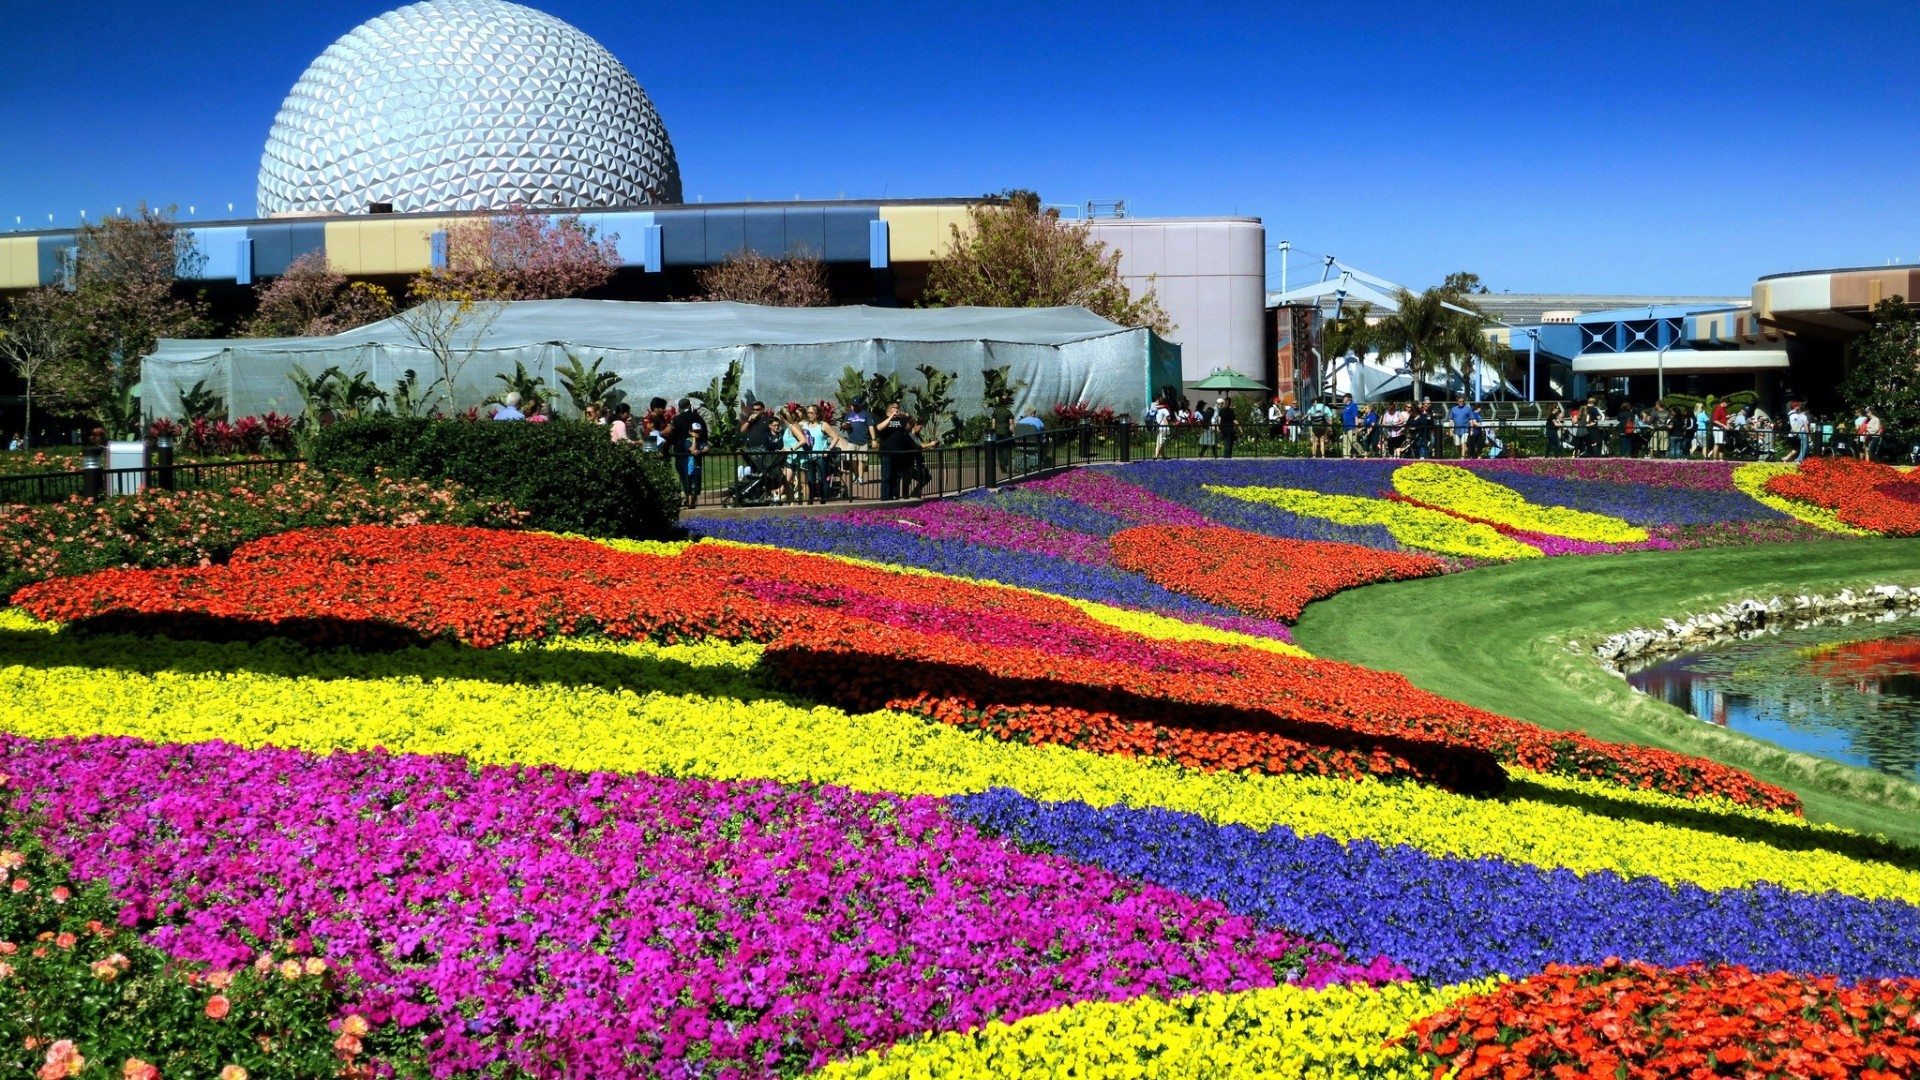 Sneak Peek At 25th Epcot International Flower Garden Festival Orlando Sentinel